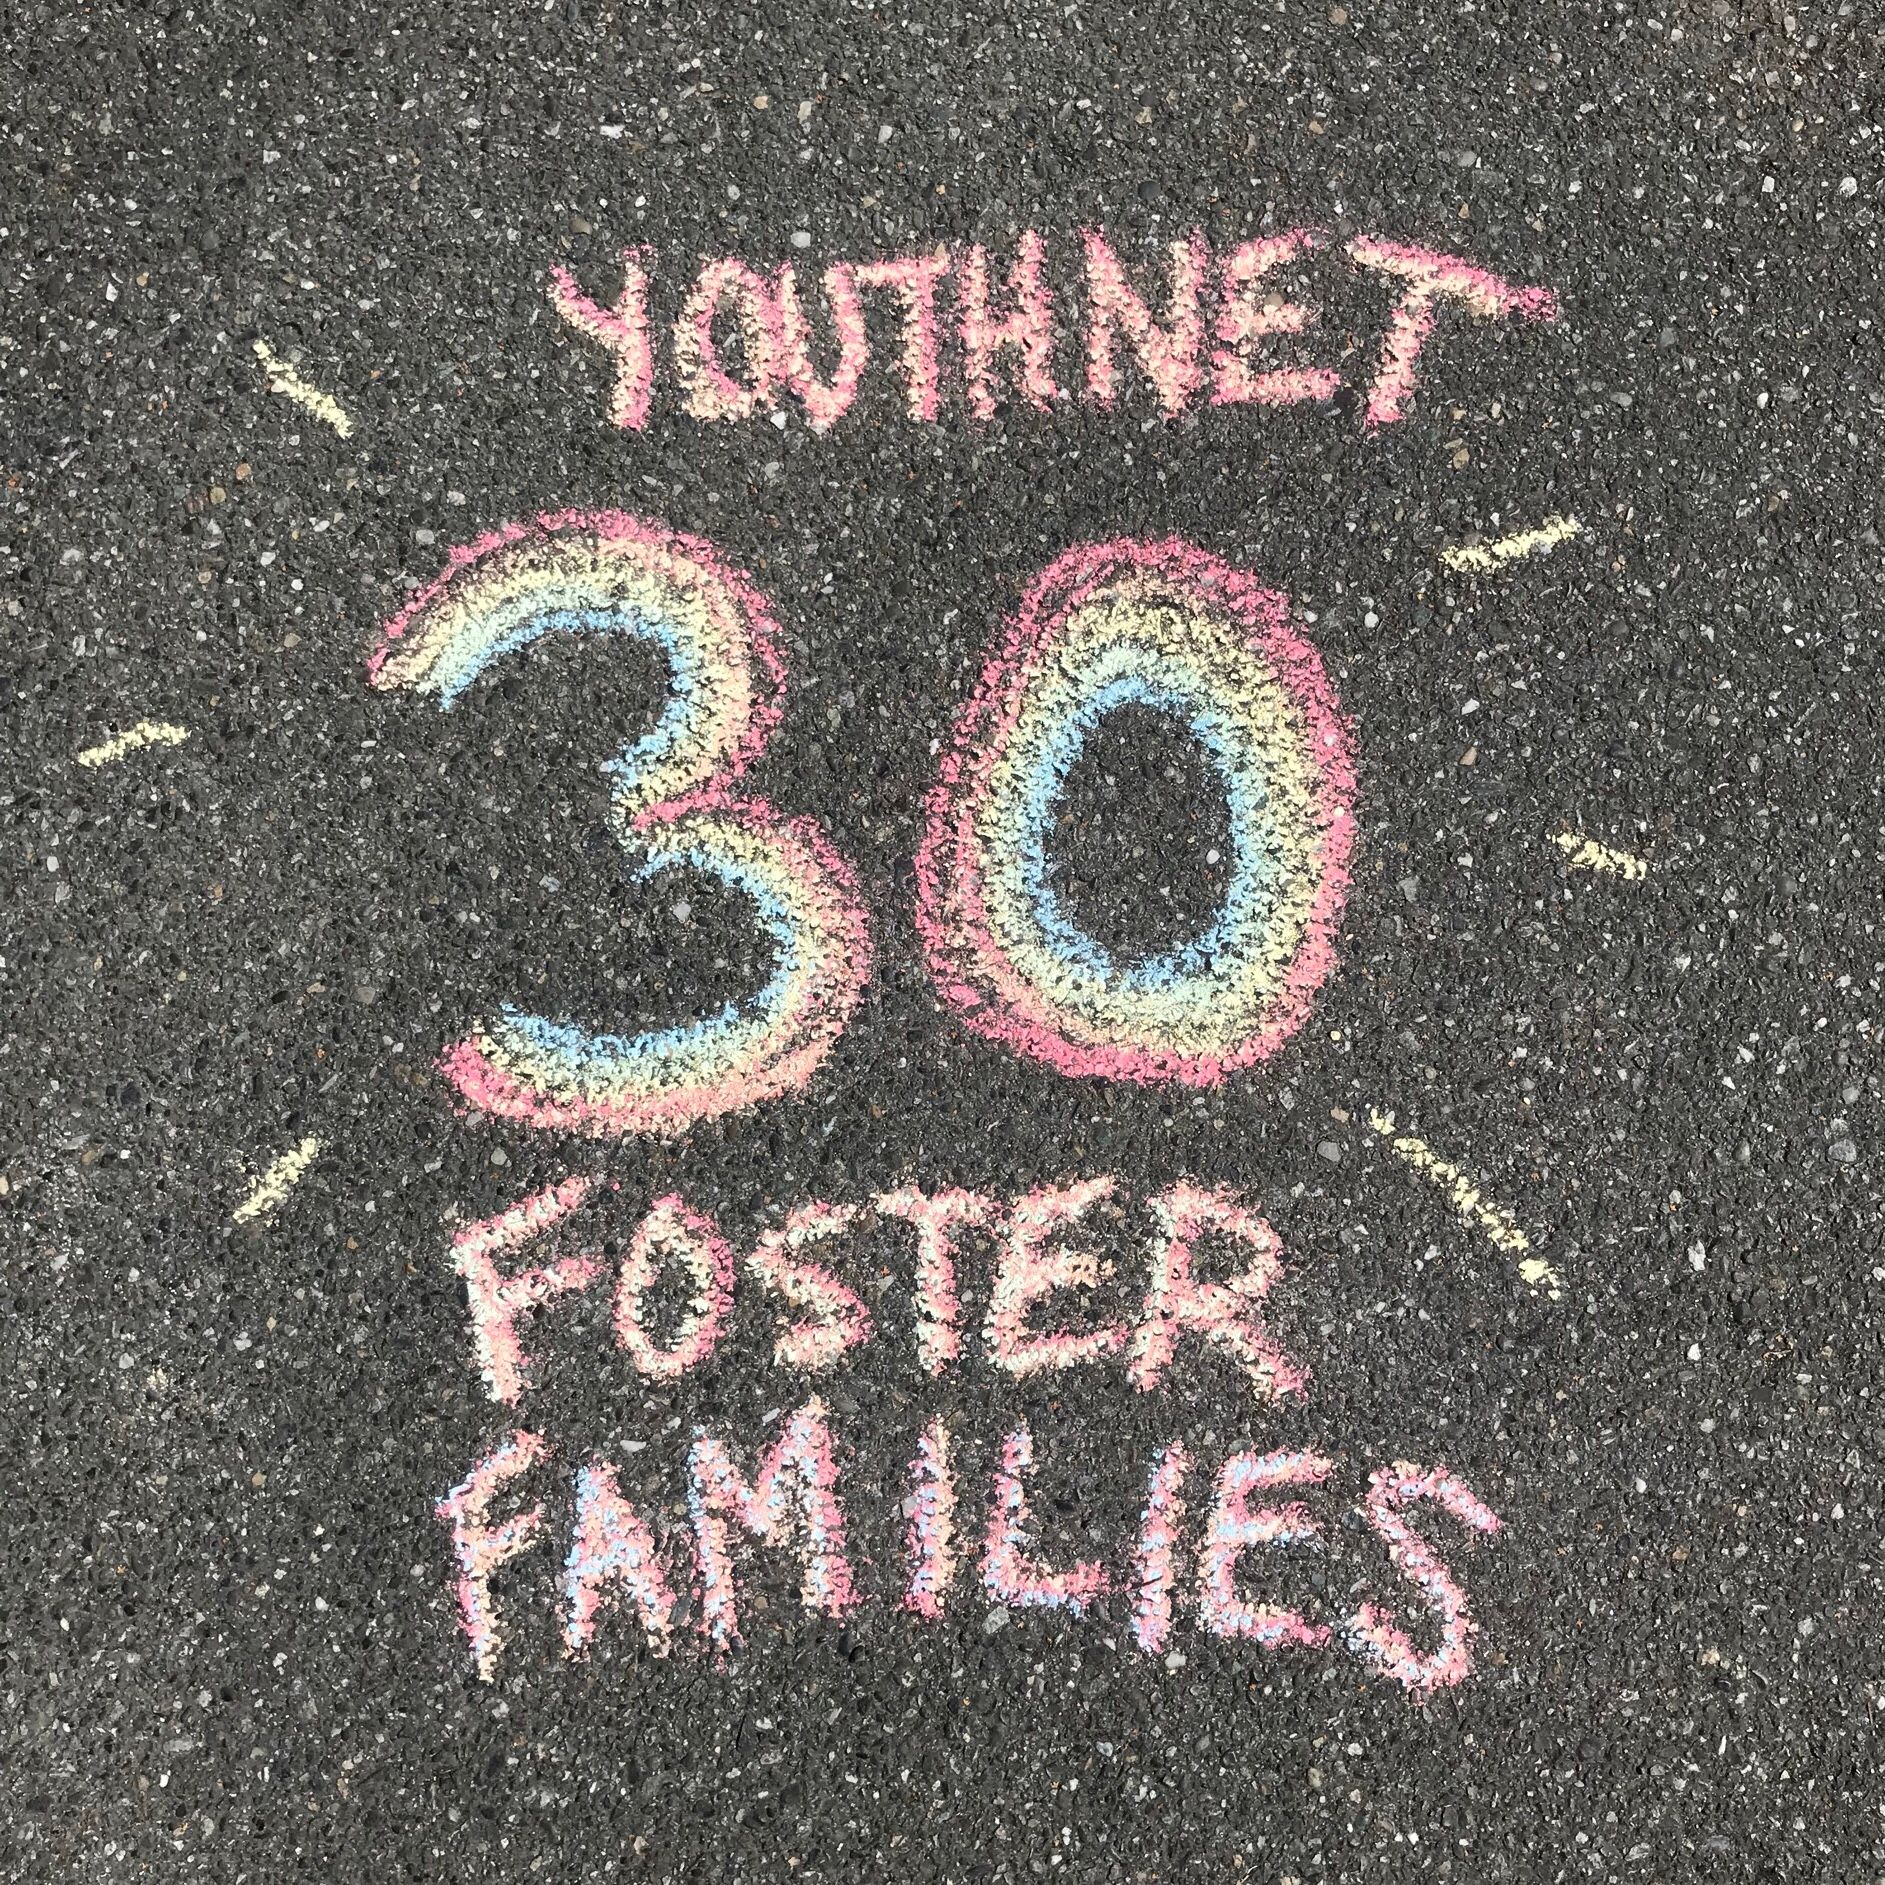 Youthnet Celebrates 30 Foster Families